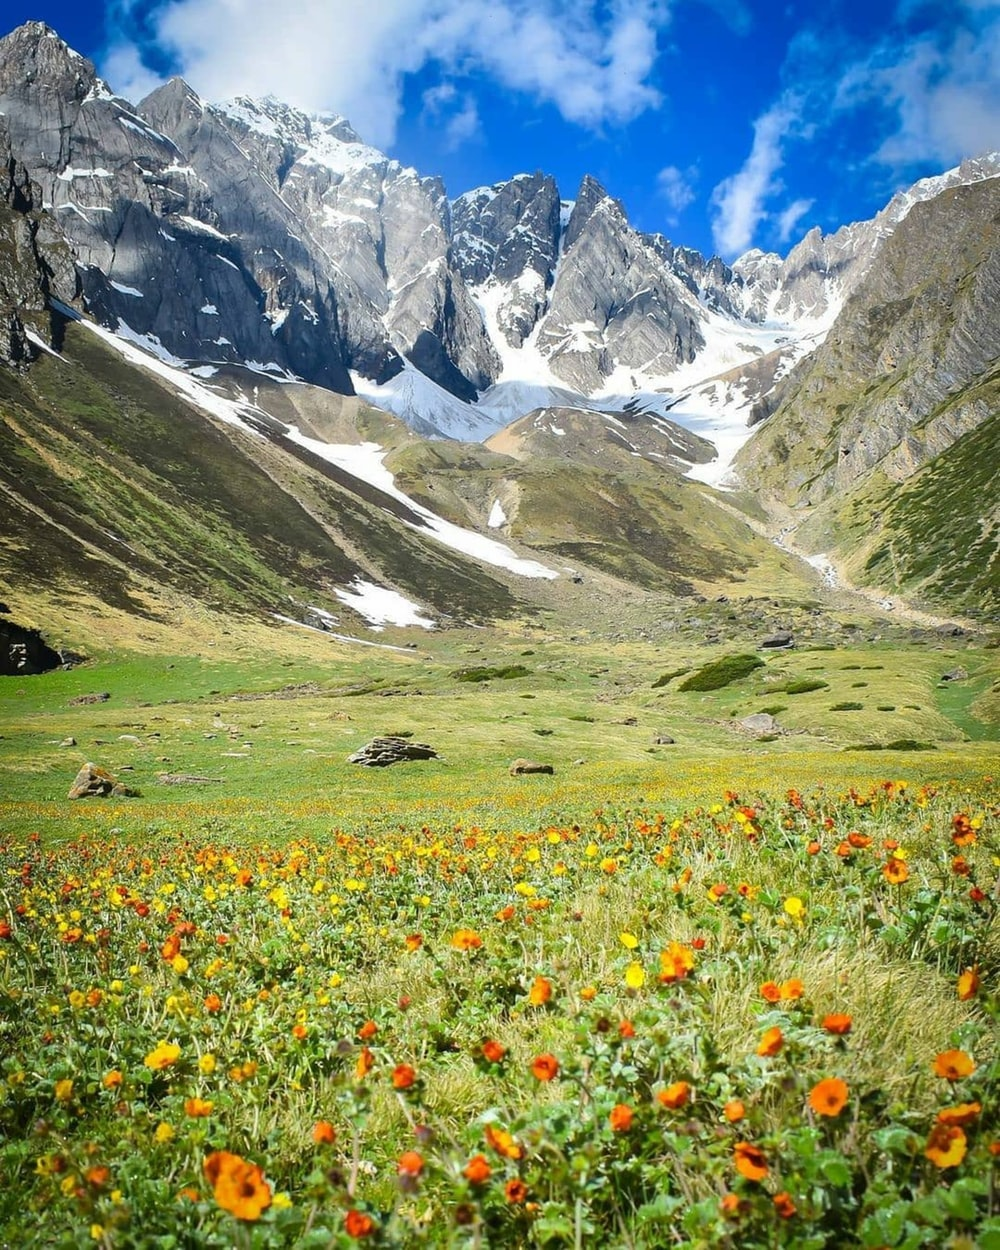 yellow and purple flower field near mountain during daytime